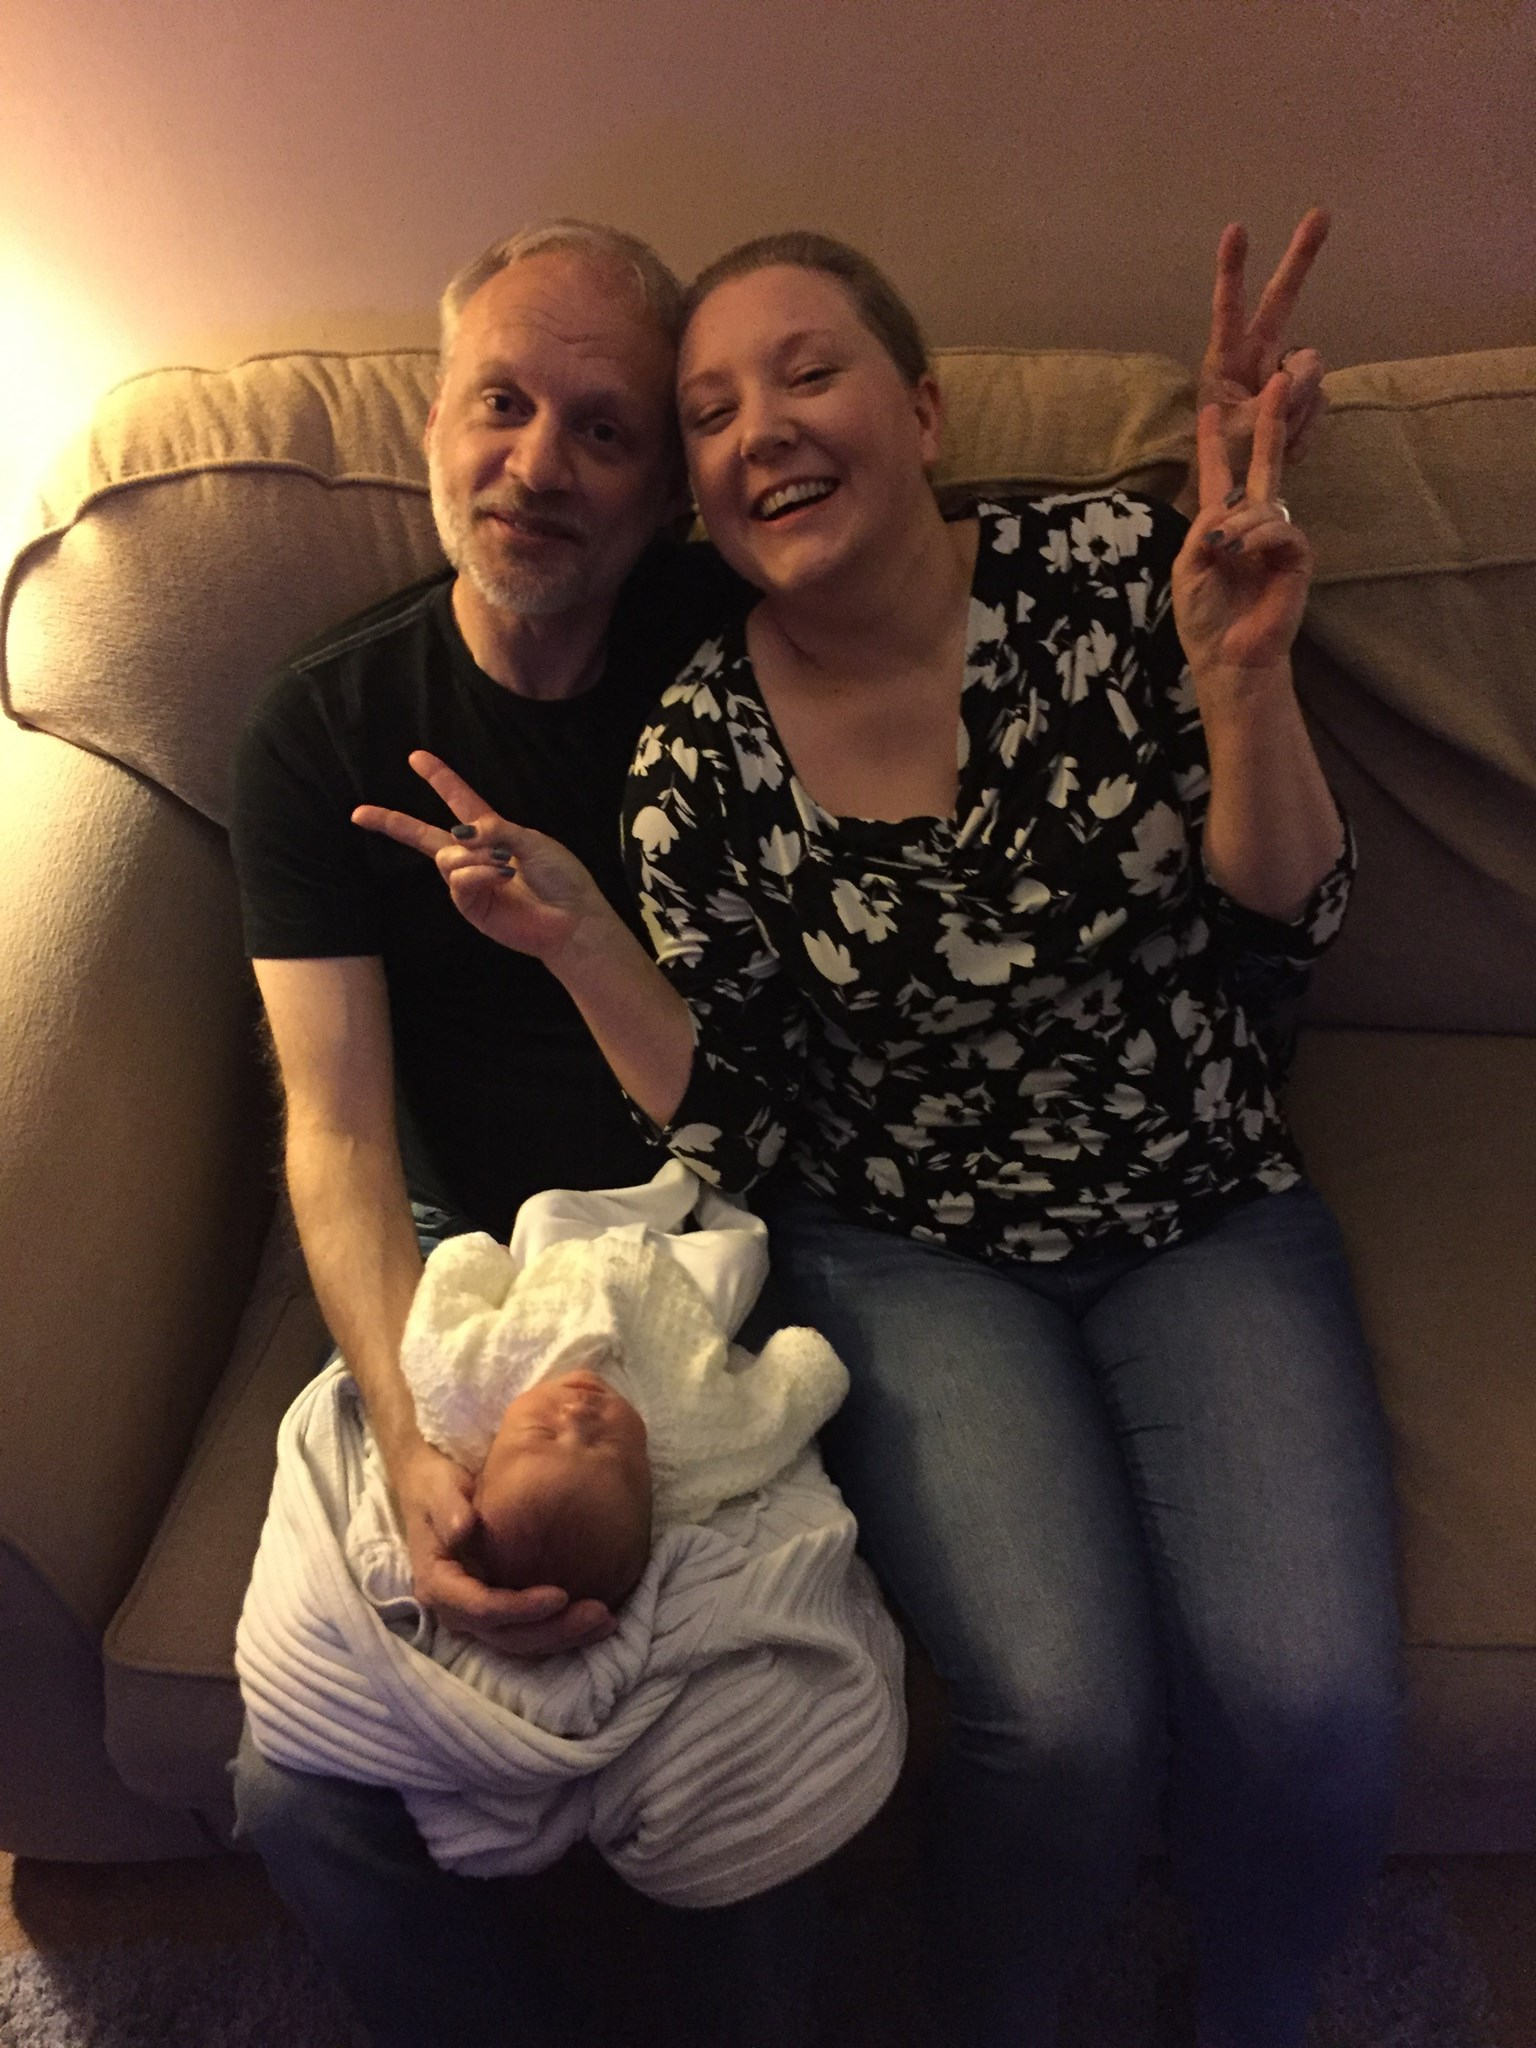 Mark and Laura with baby Alyssia - only a few days old!